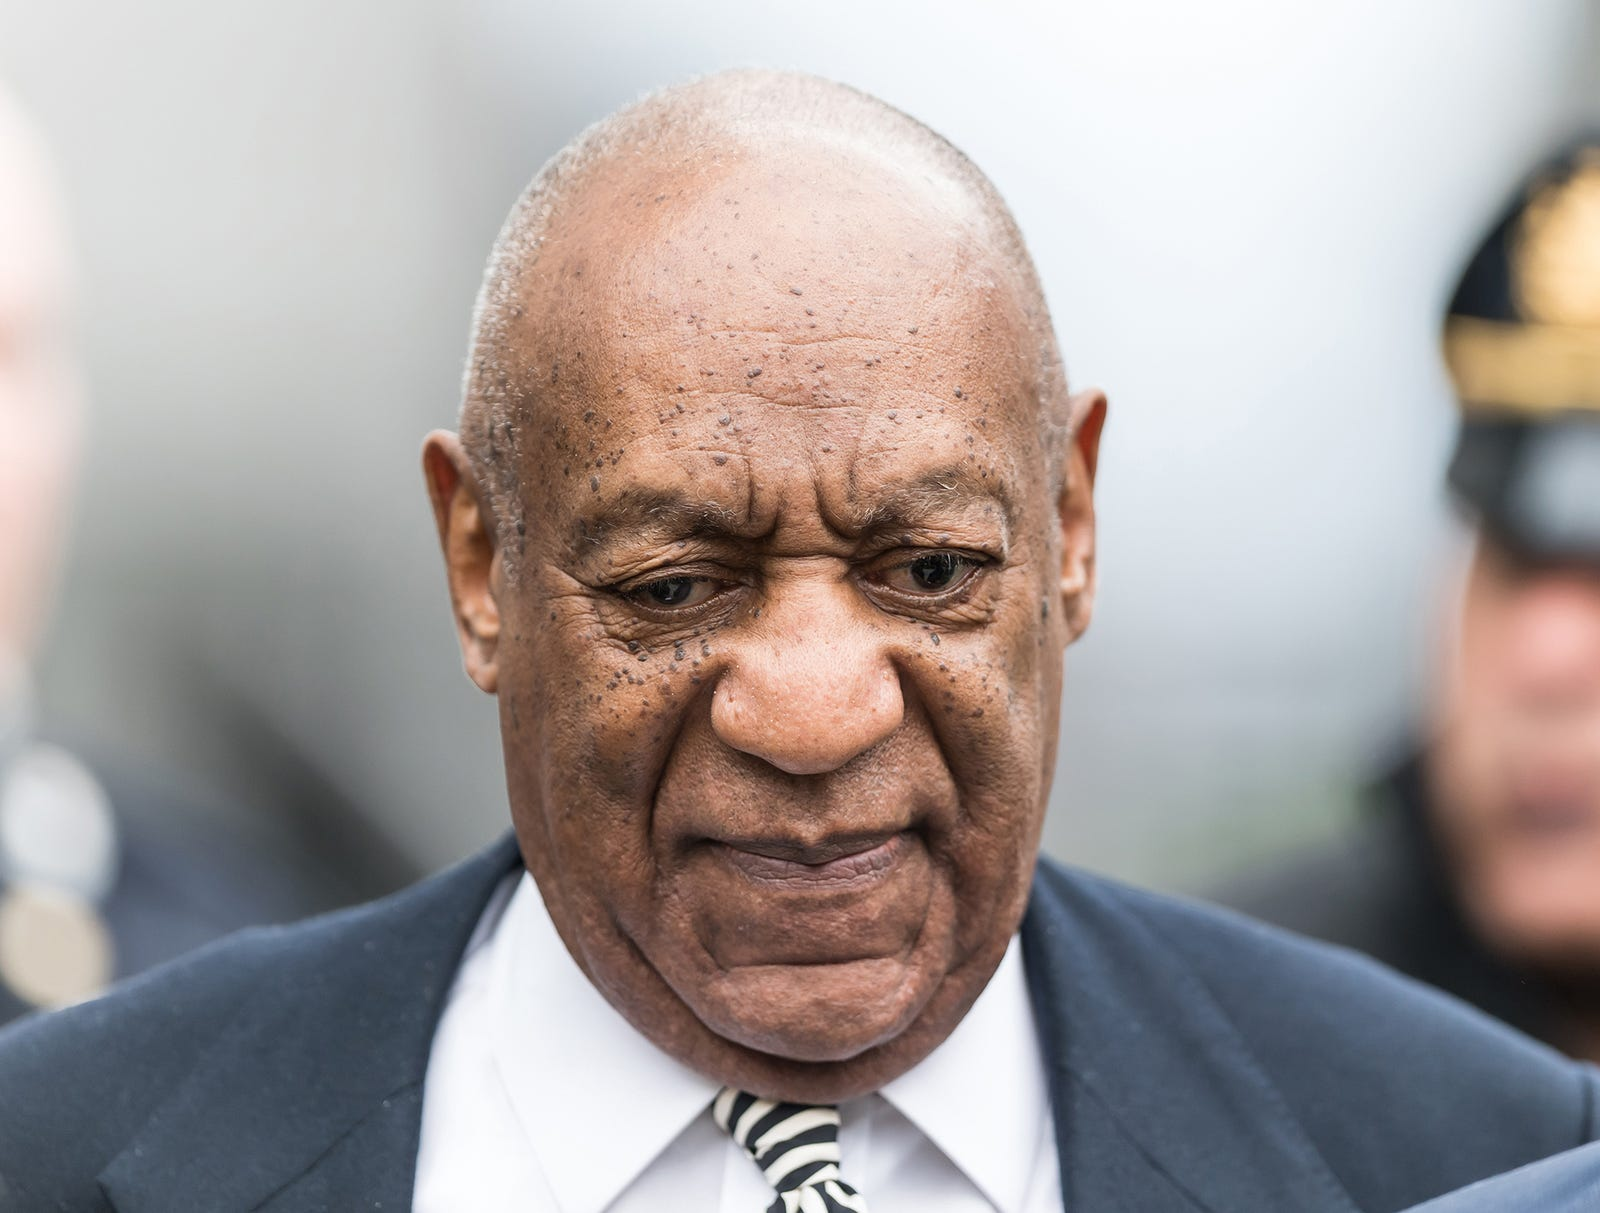 Lawyers Identify Dozens More Bill Cosby Victims While Interviewing Potential Jurors